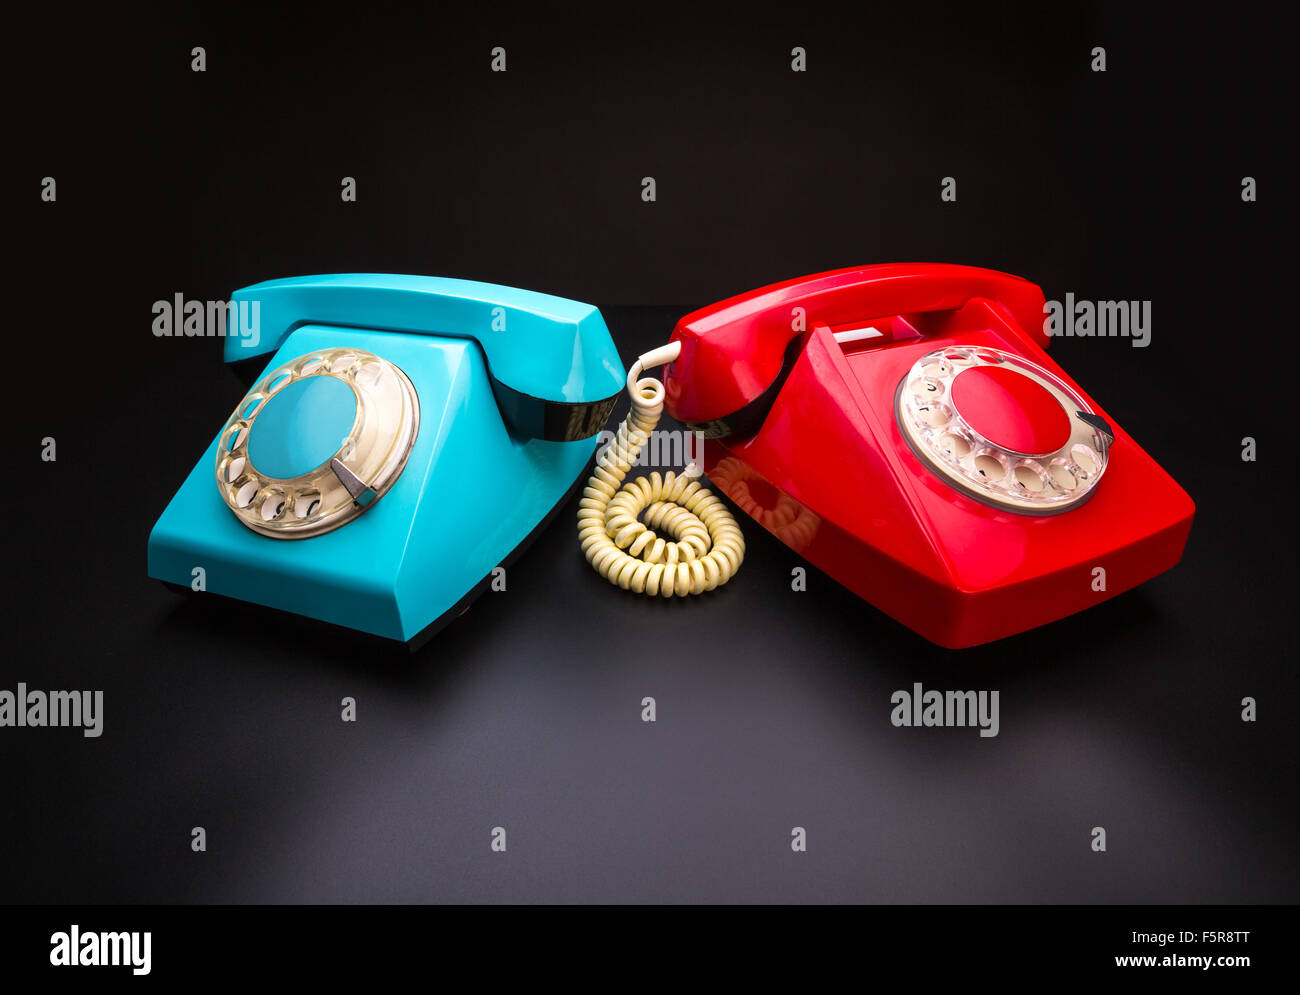 Vintage red and blue telephones side by side - Stock Image